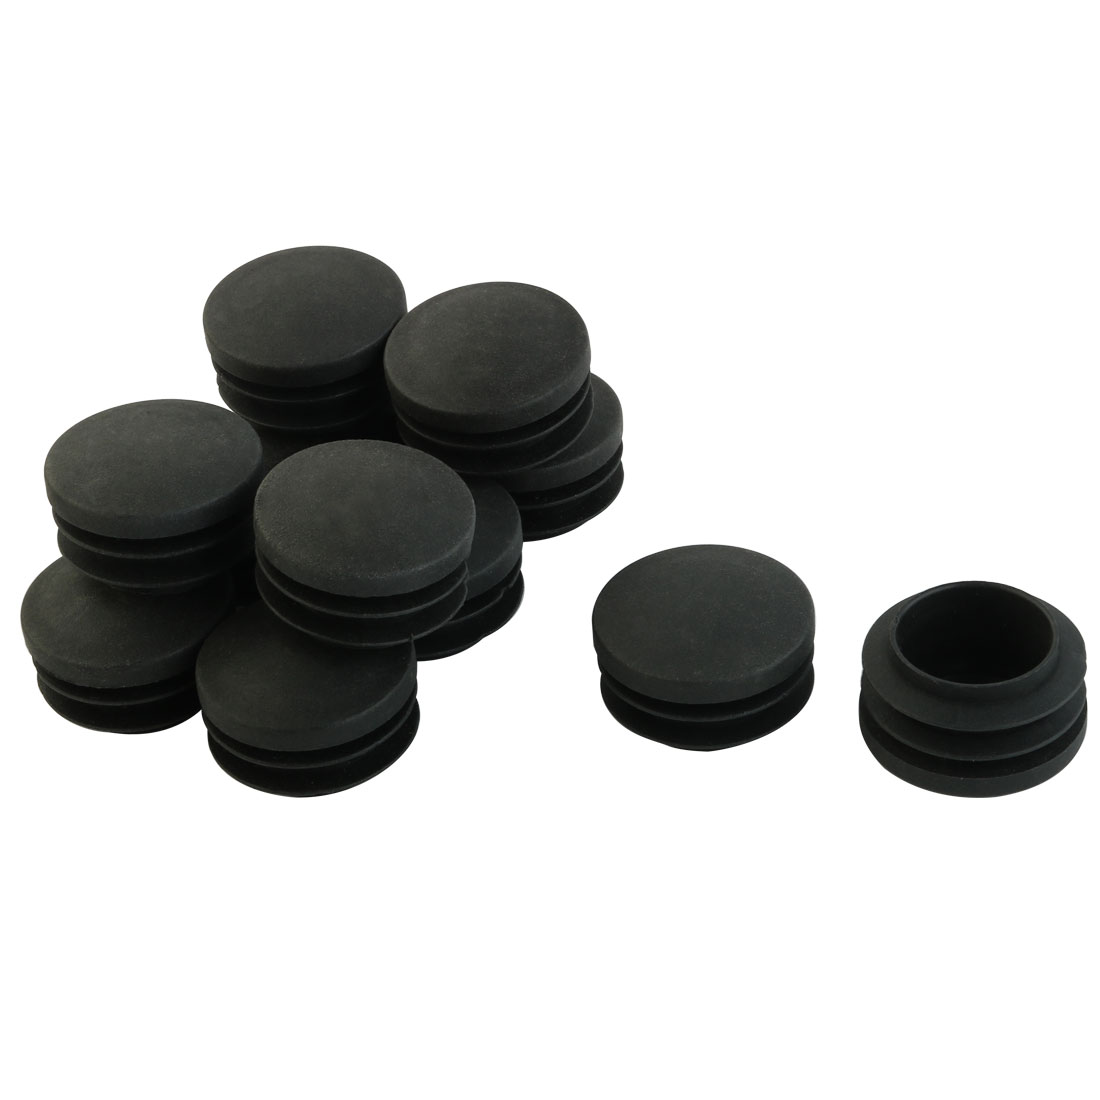 23mm x 35mm Black Plastic Blanking End Caps Round Tube Insert Bung 12 Pcs